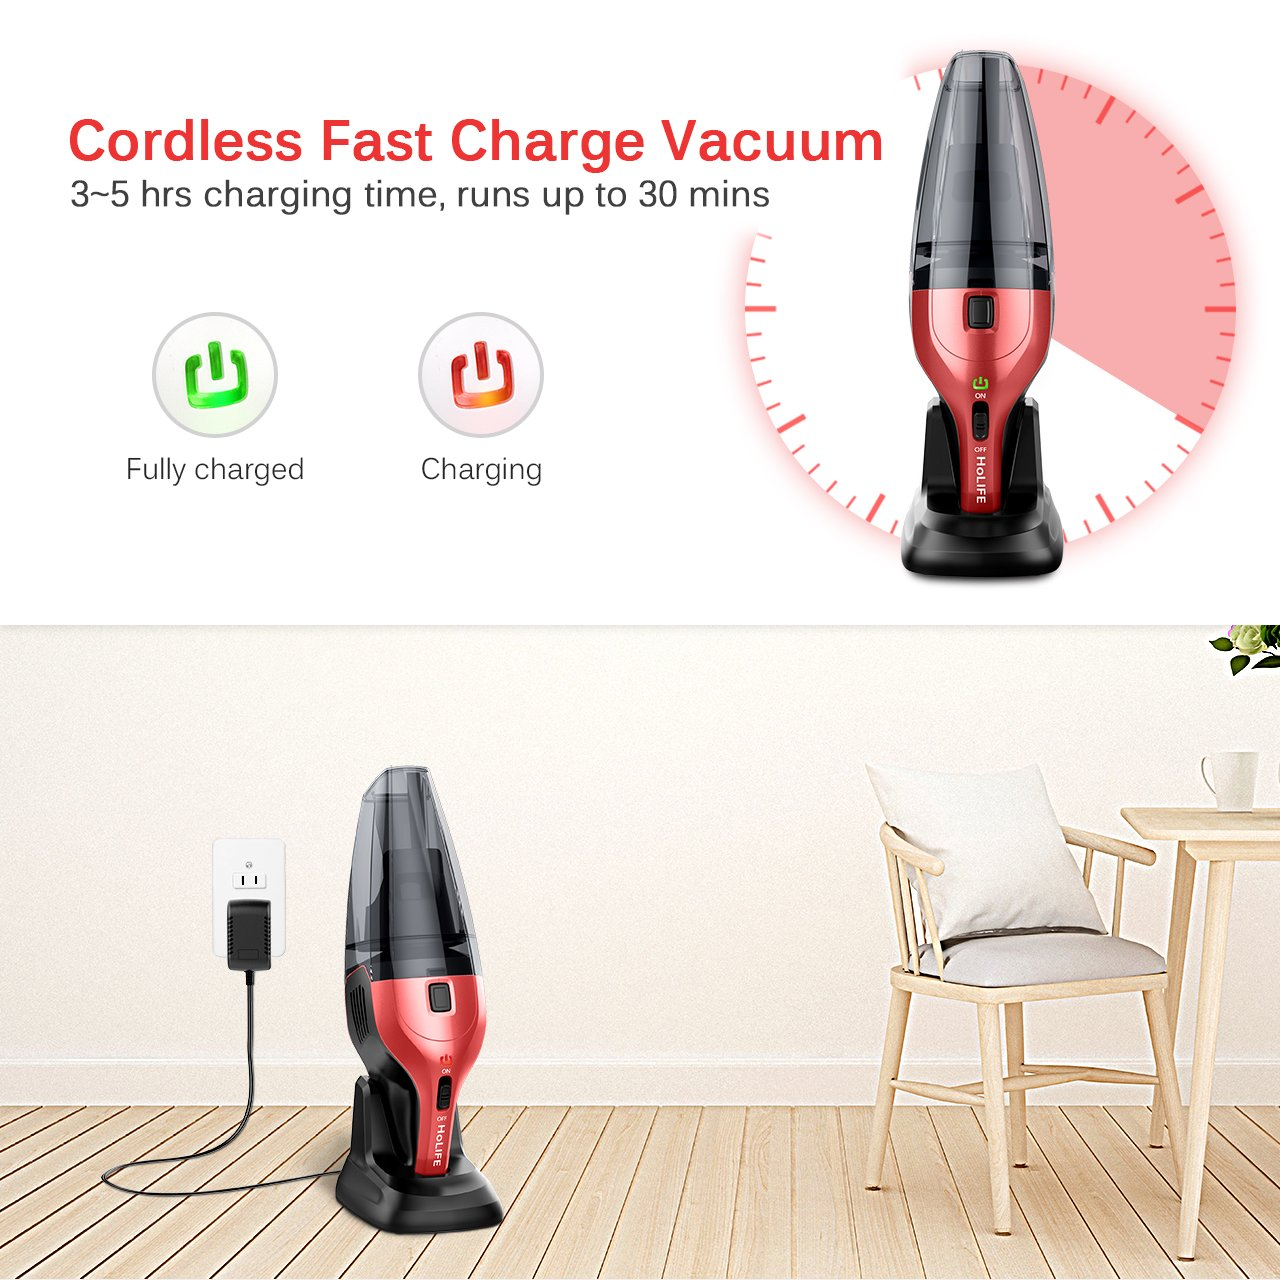 HoLife Handheld Vacuum 14.8V Hand Cordless Portable Pet Hair Home and Car Cleaning, min, Red by HoLife (Image #6)